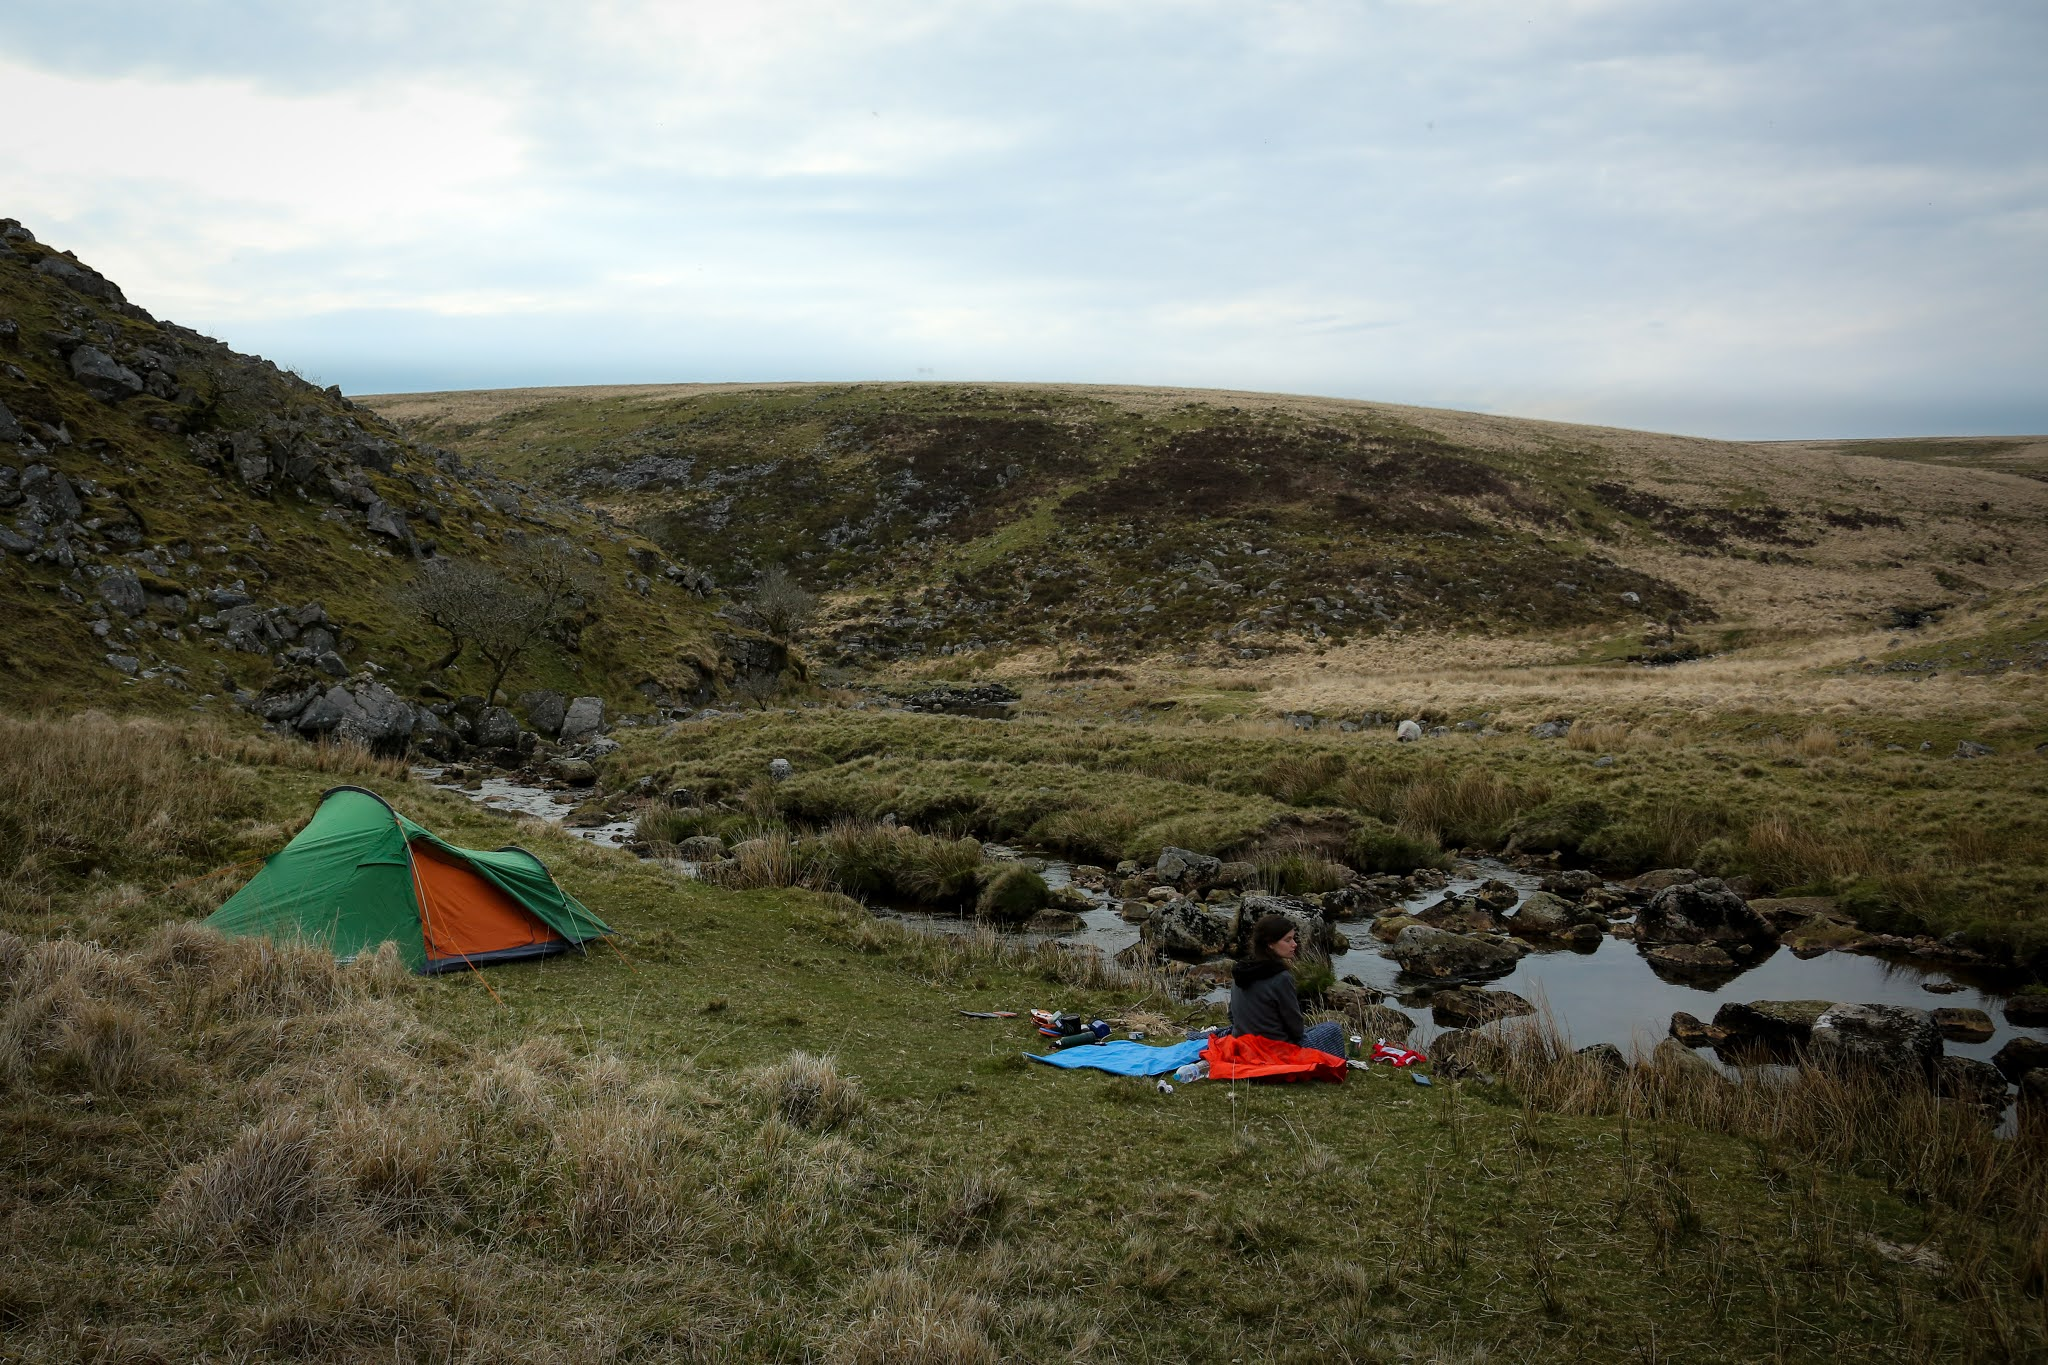 Wild camping by a river in Dartmoor